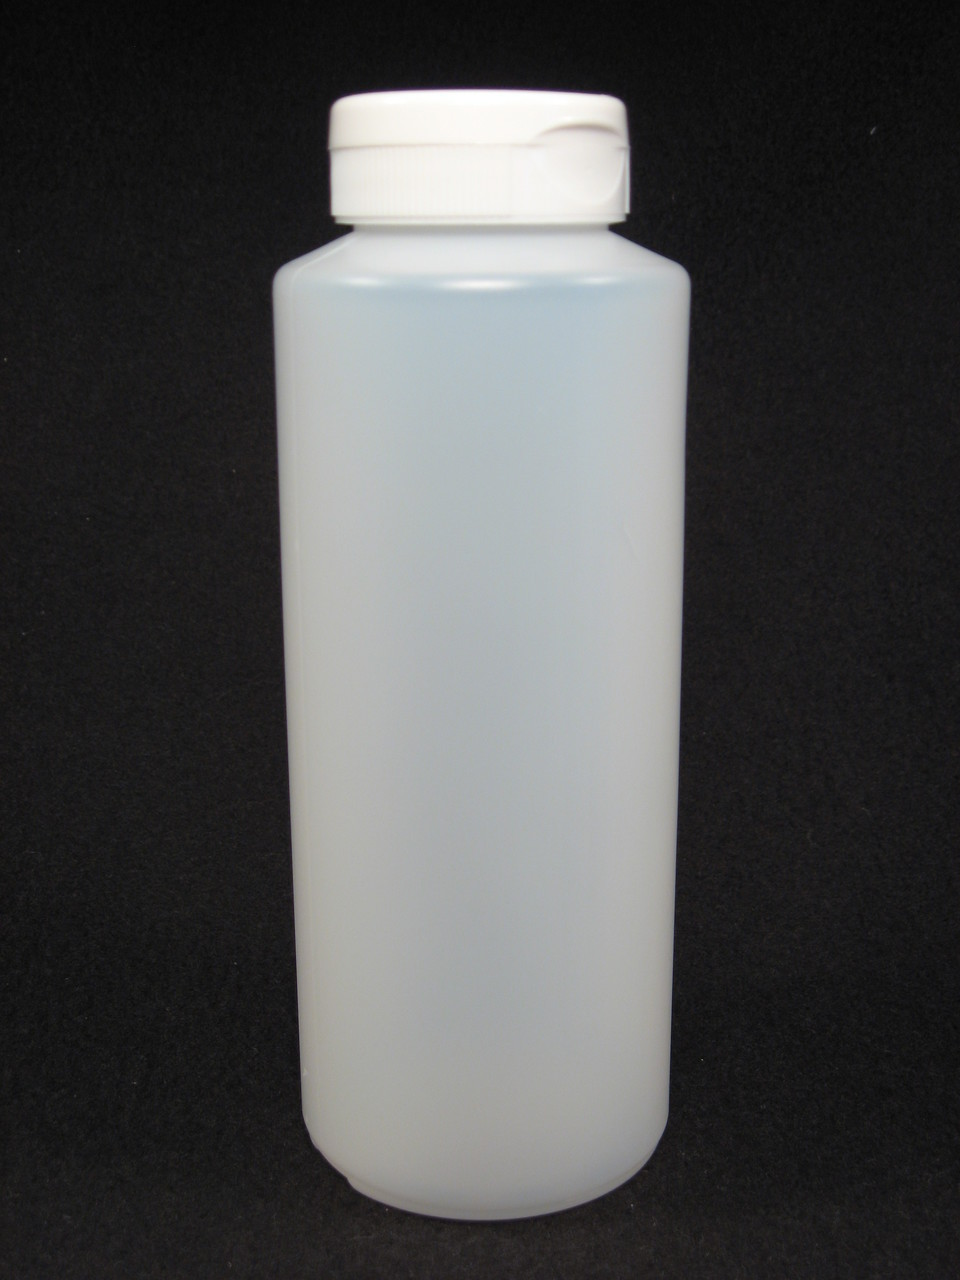 16 oz. Cylinder honey bottles - case of 300 with white flip top lids